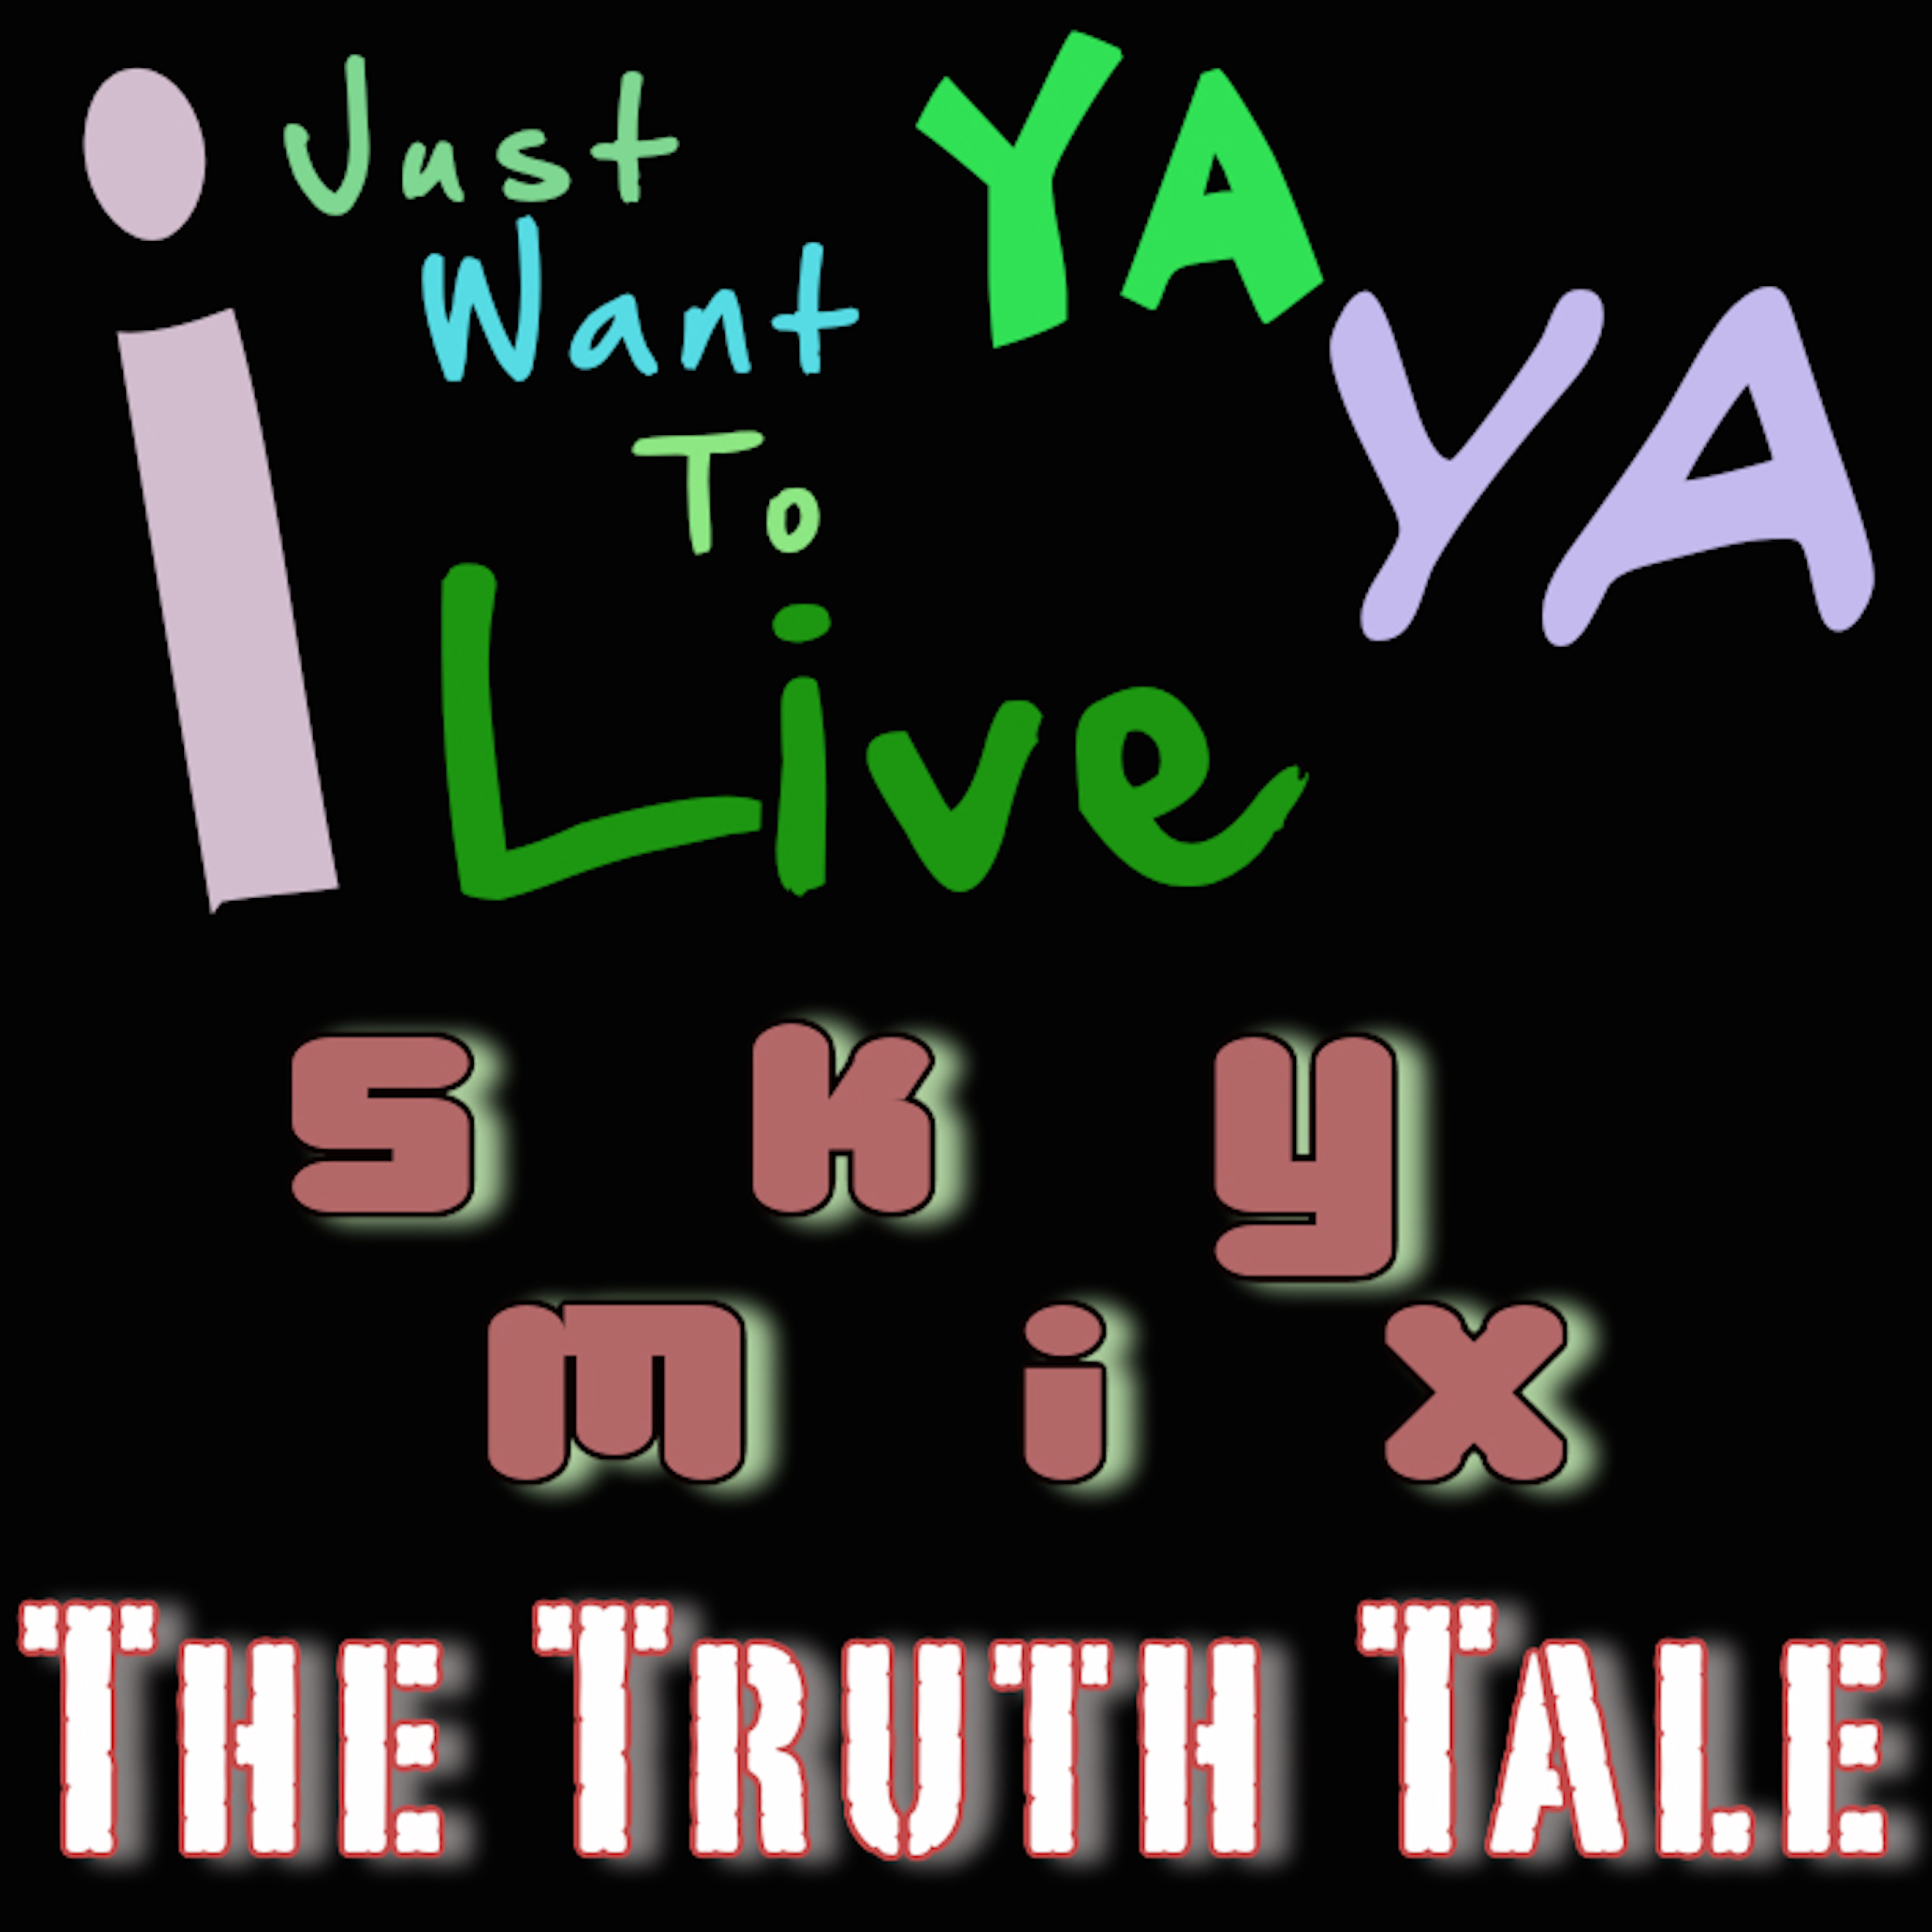 New Music Release: The Truth Tale – I Just Want To Live Ya Ya – Sky Mix